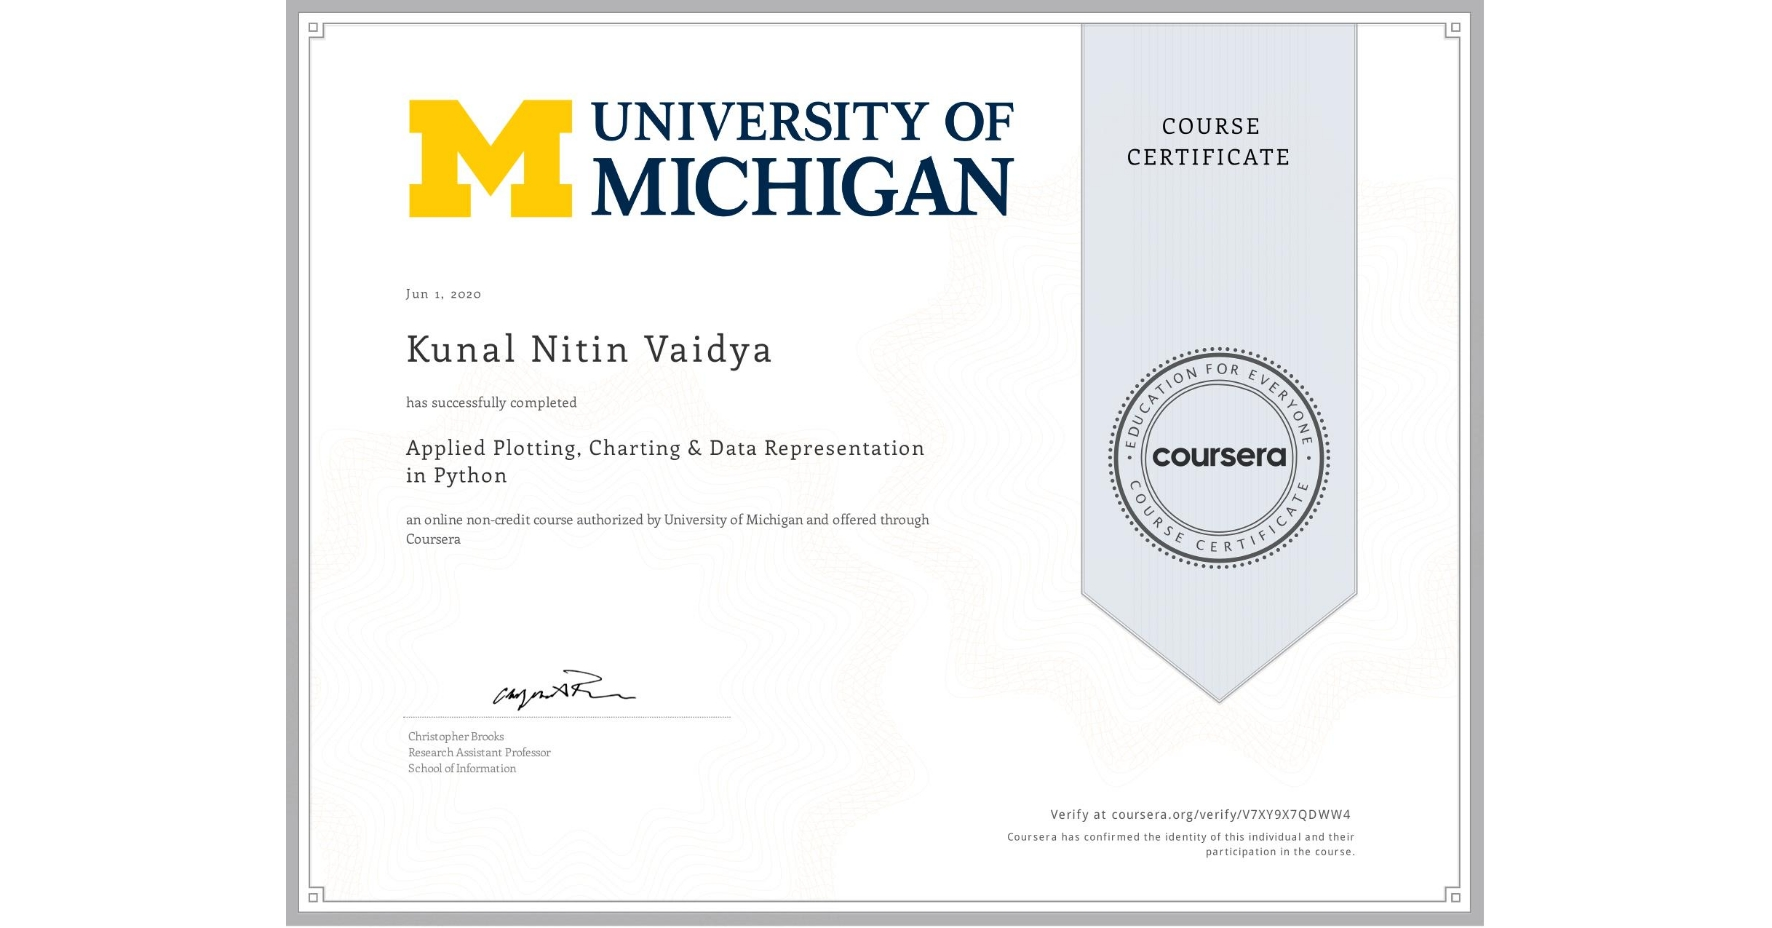 View certificate for Kunal Nitin Vaidya, Applied Plotting, Charting & Data Representation in Python, an online non-credit course authorized by University of Michigan and offered through Coursera